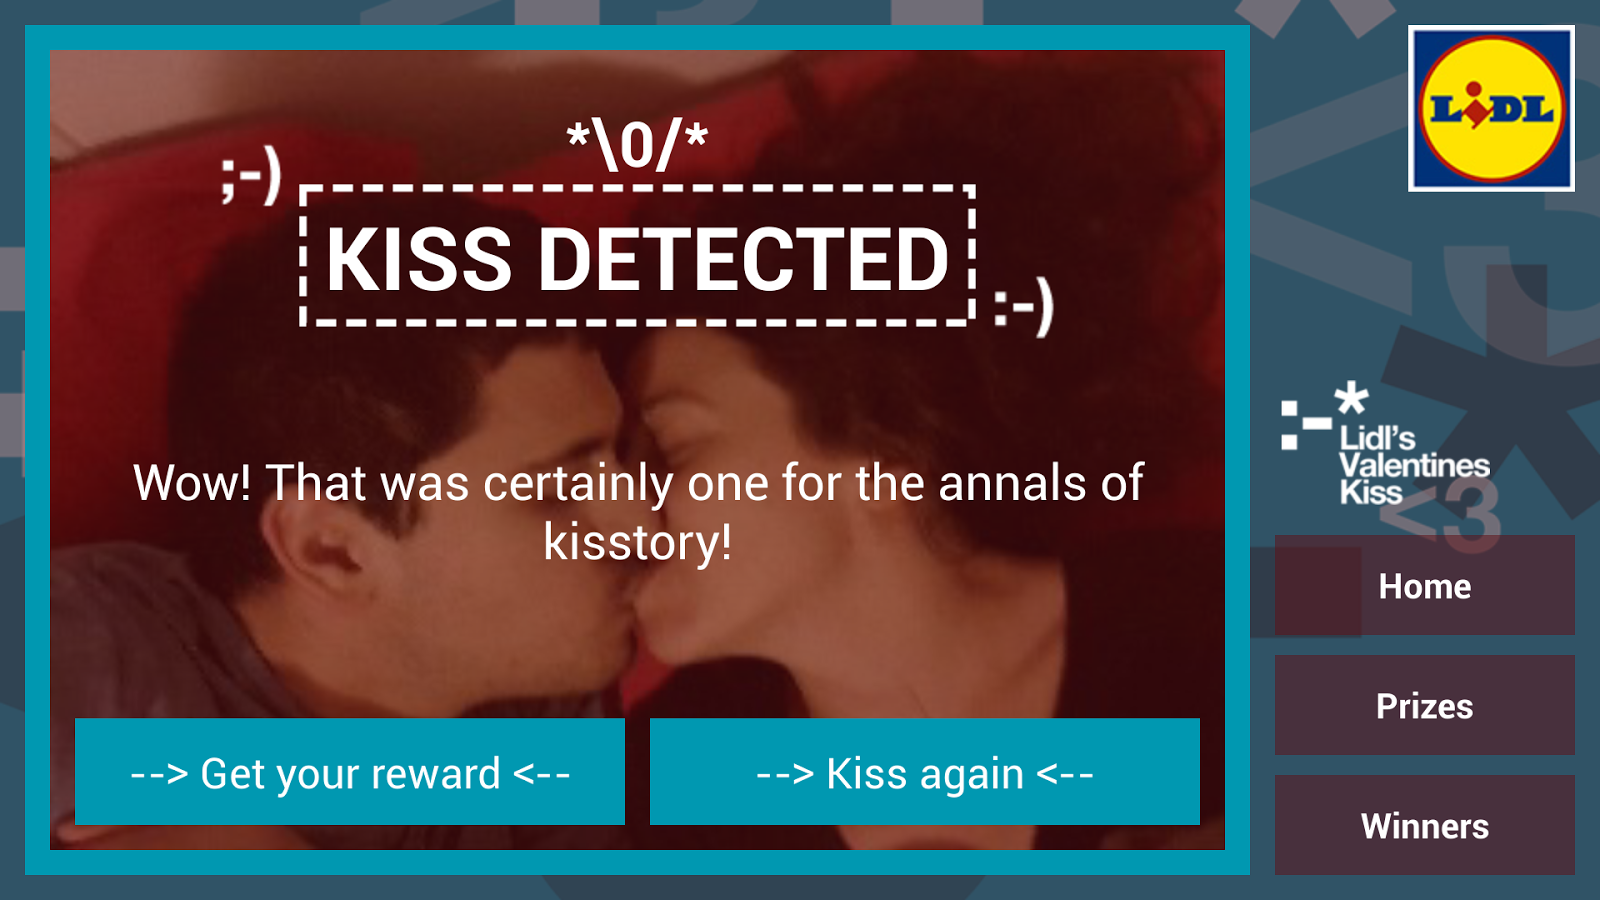 Lidl's Valentine Kiss - screenshot